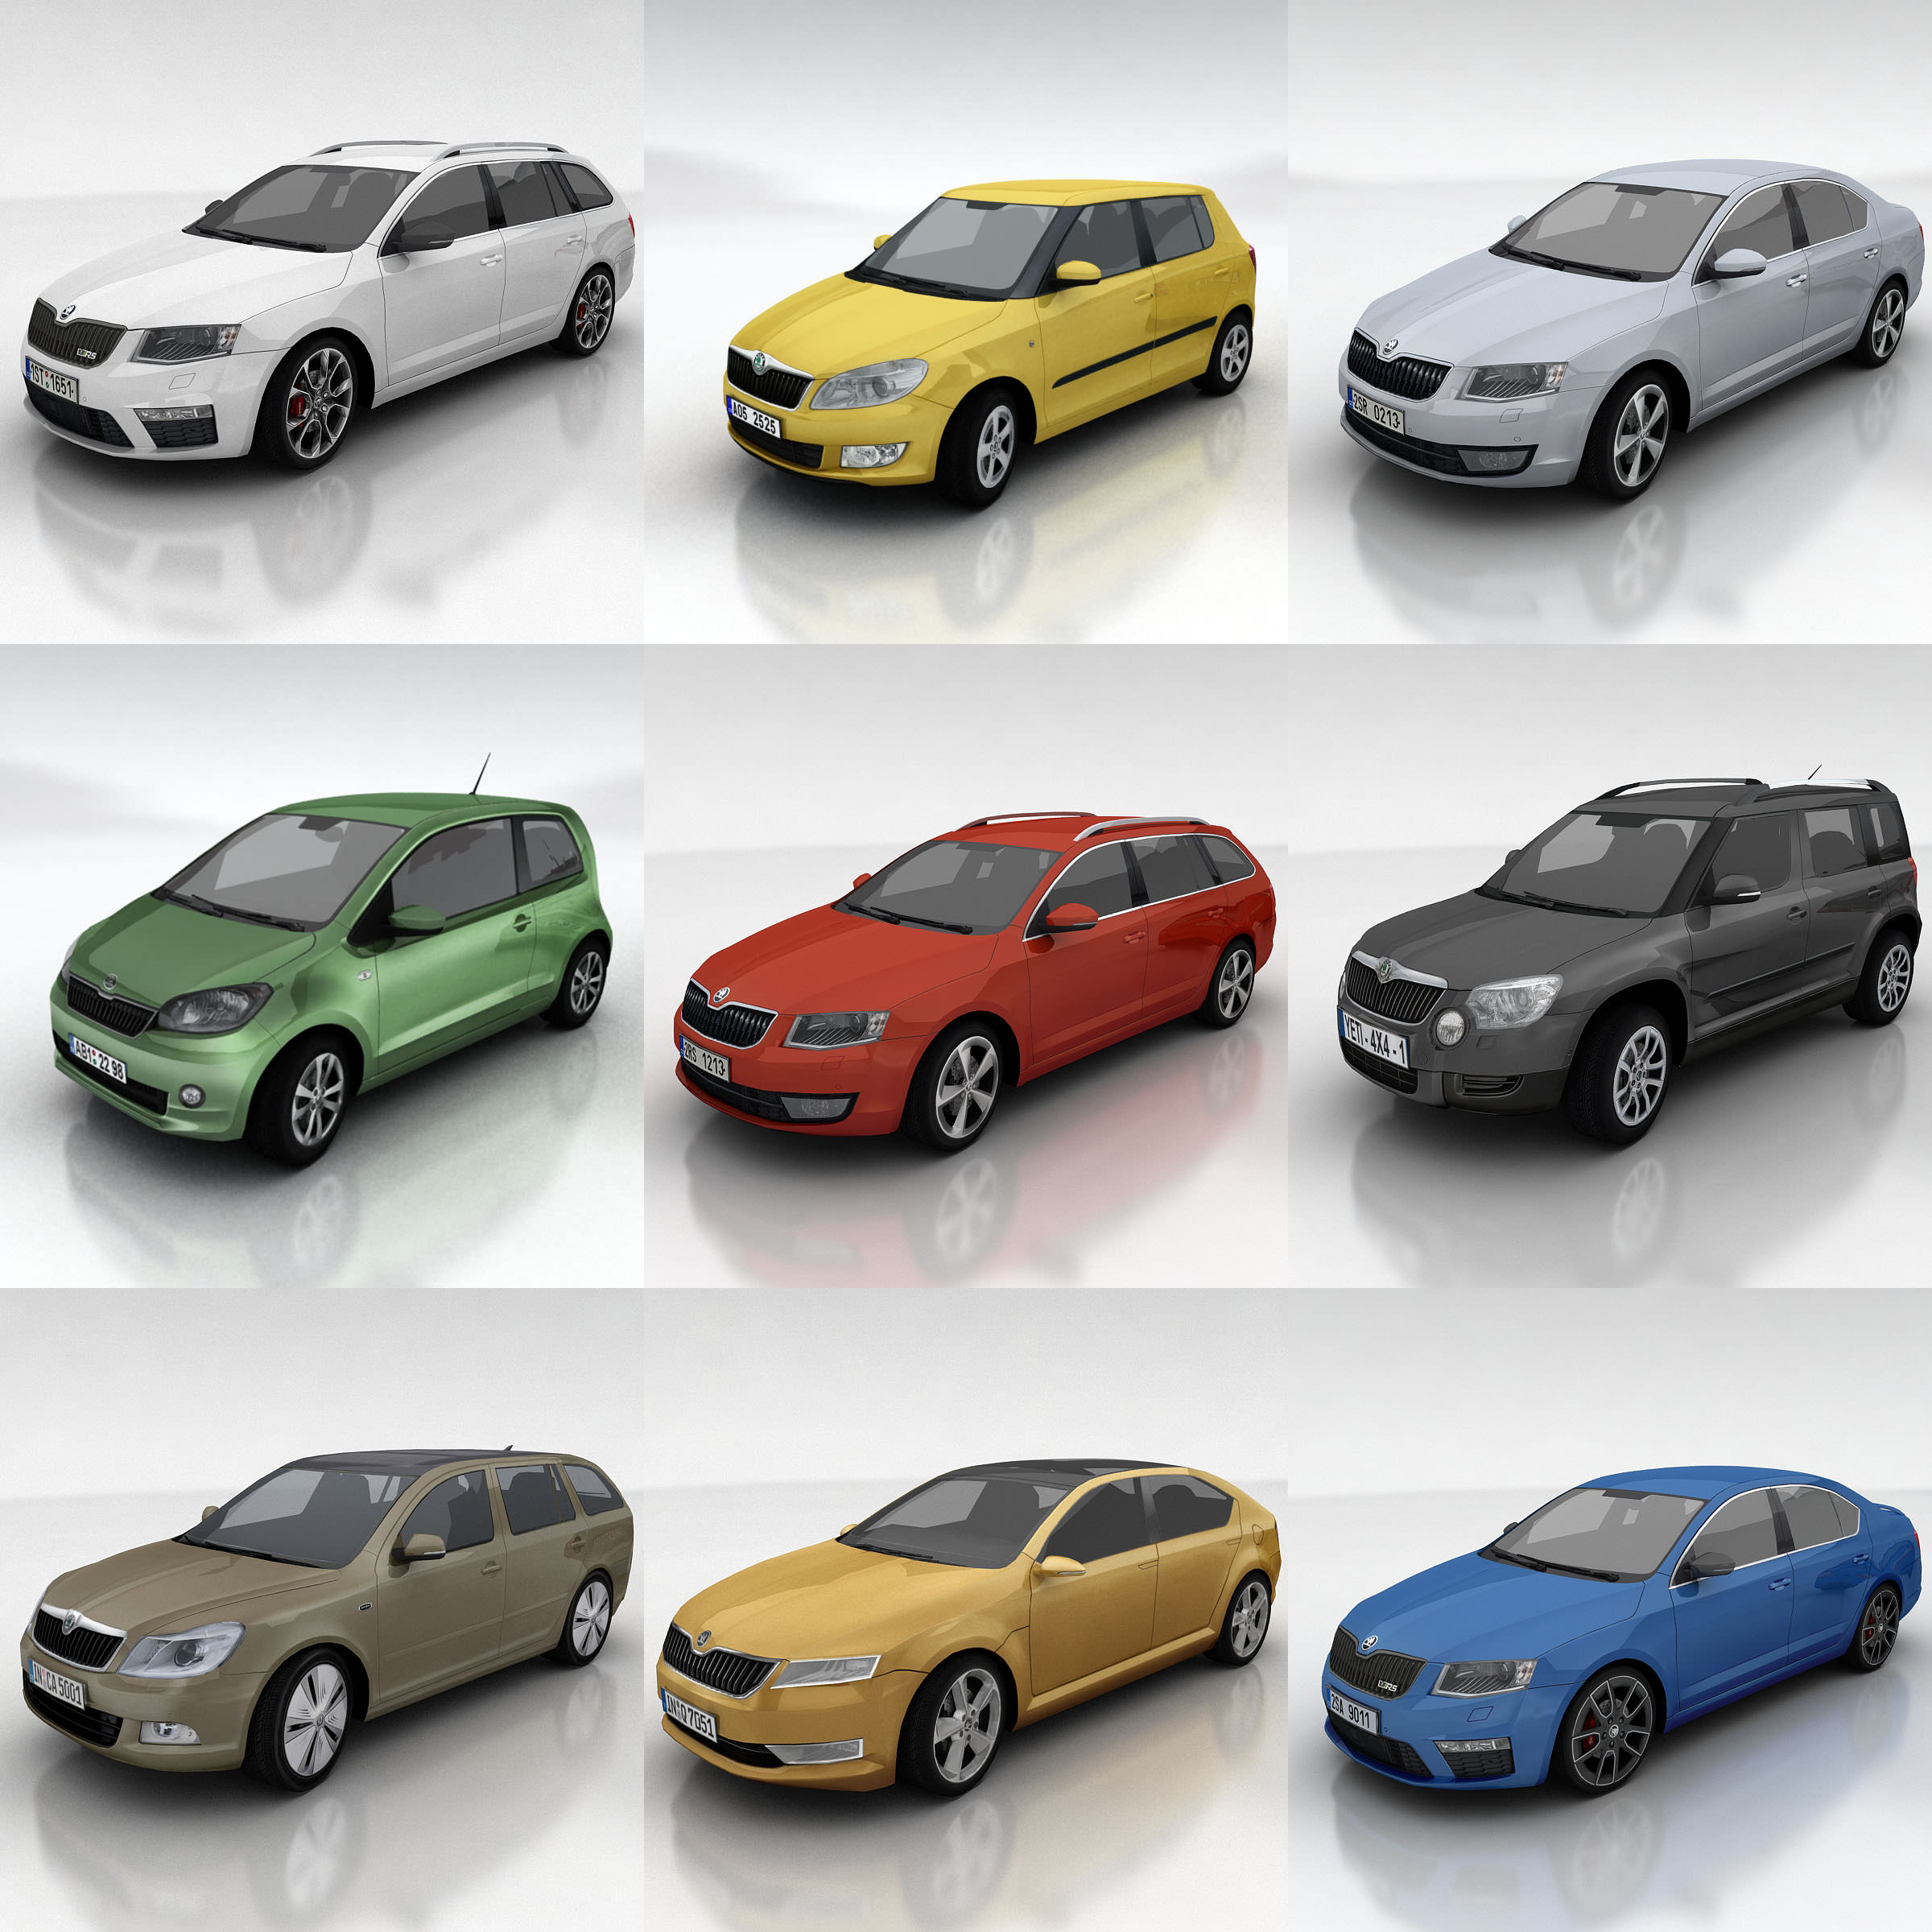 10 Skoda Cars Collection 3D Model Game Ready .max